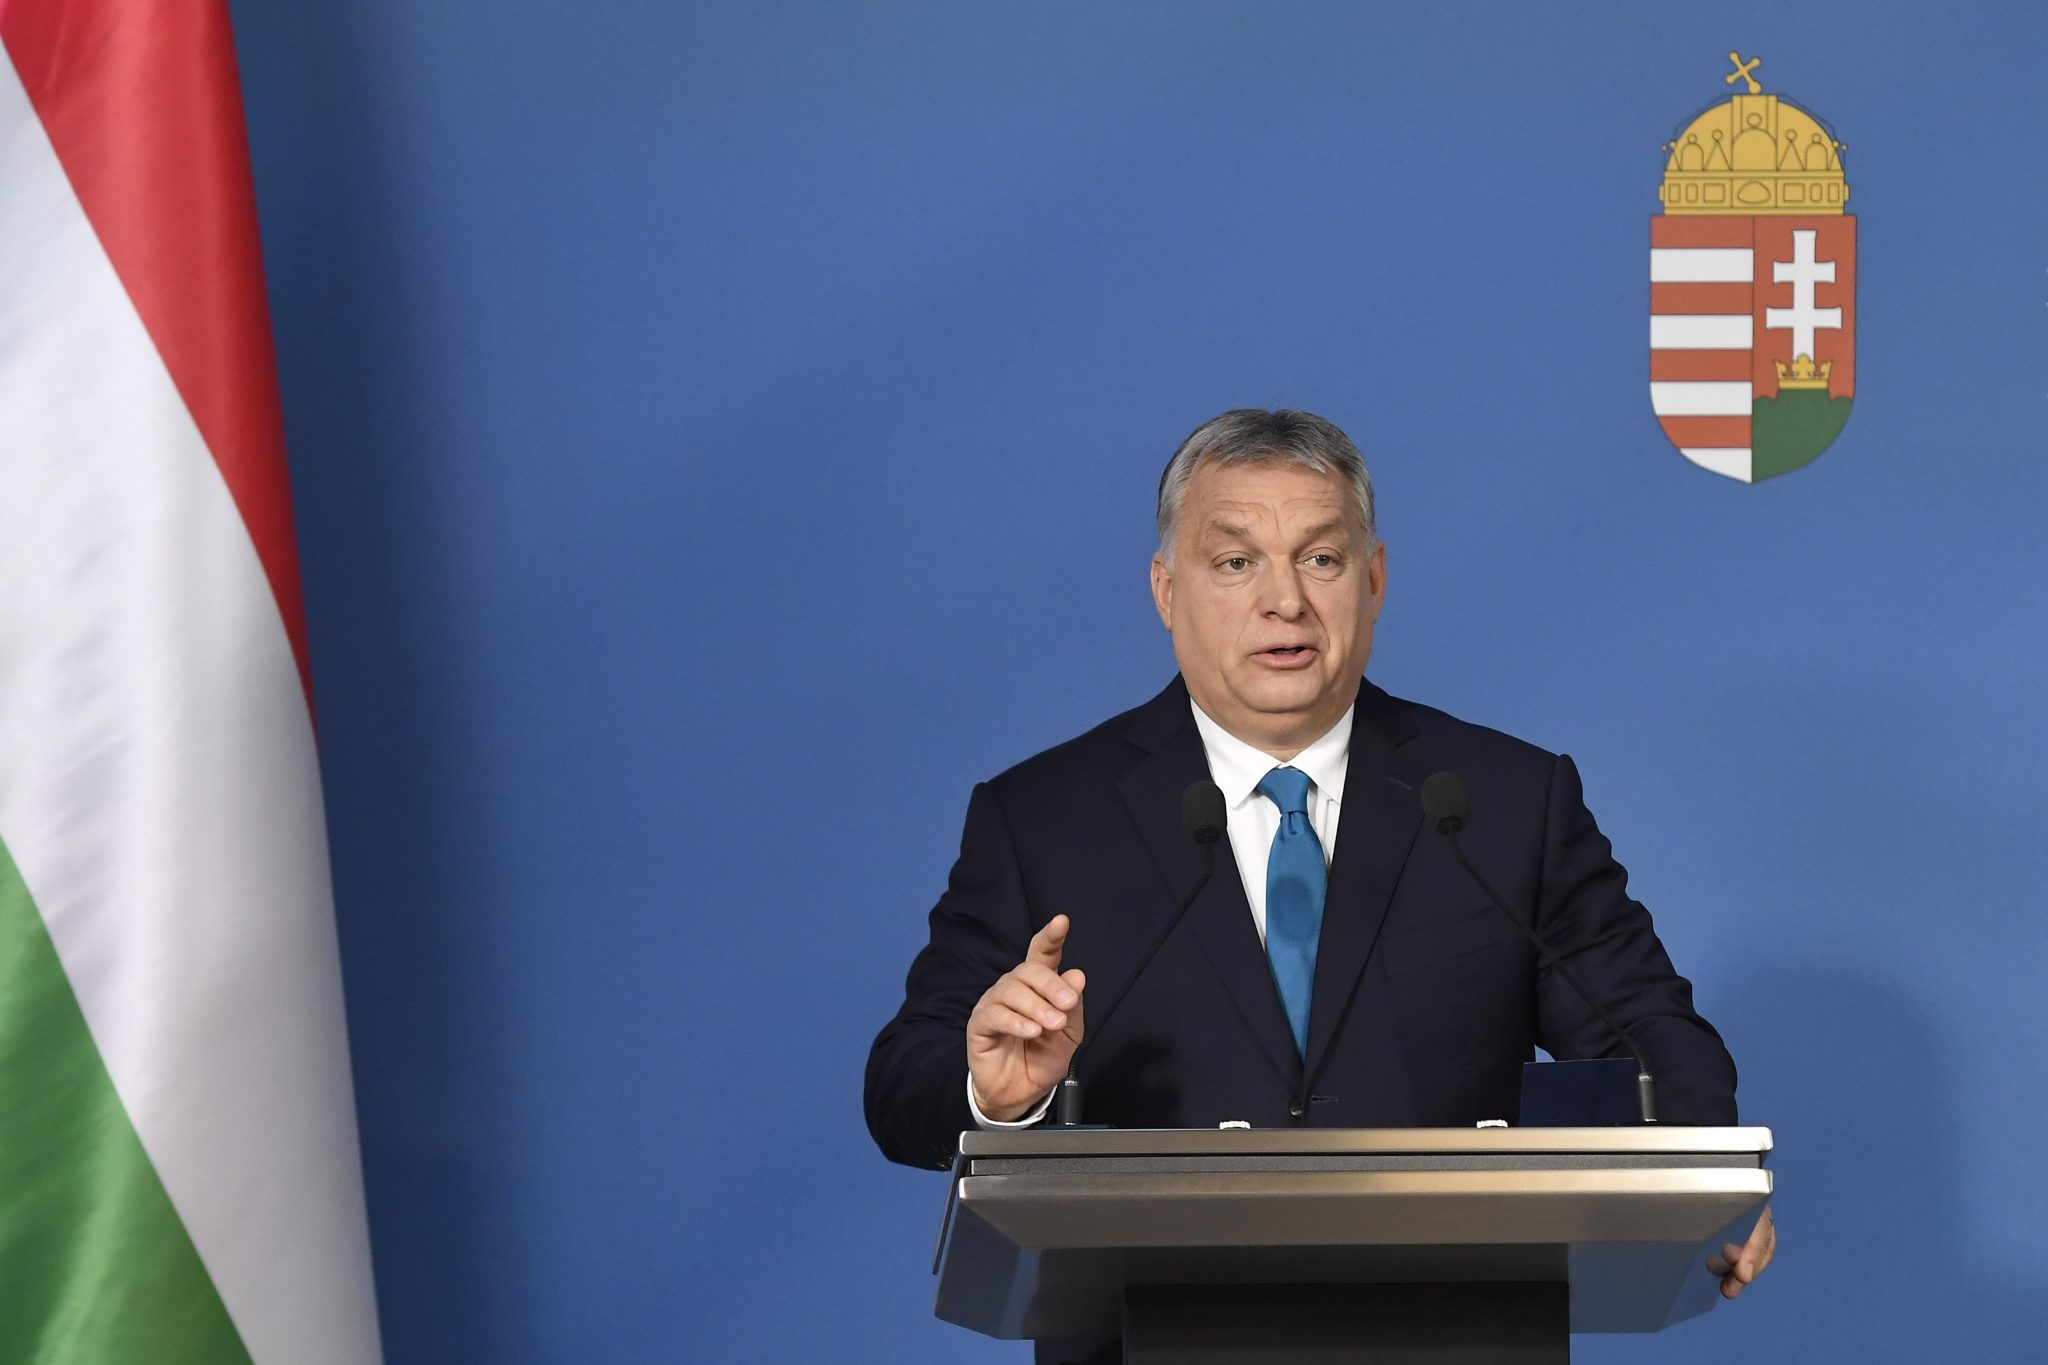 Orbán: Hungary Wants Major Powers to Have Interest in Economic Success post's picture